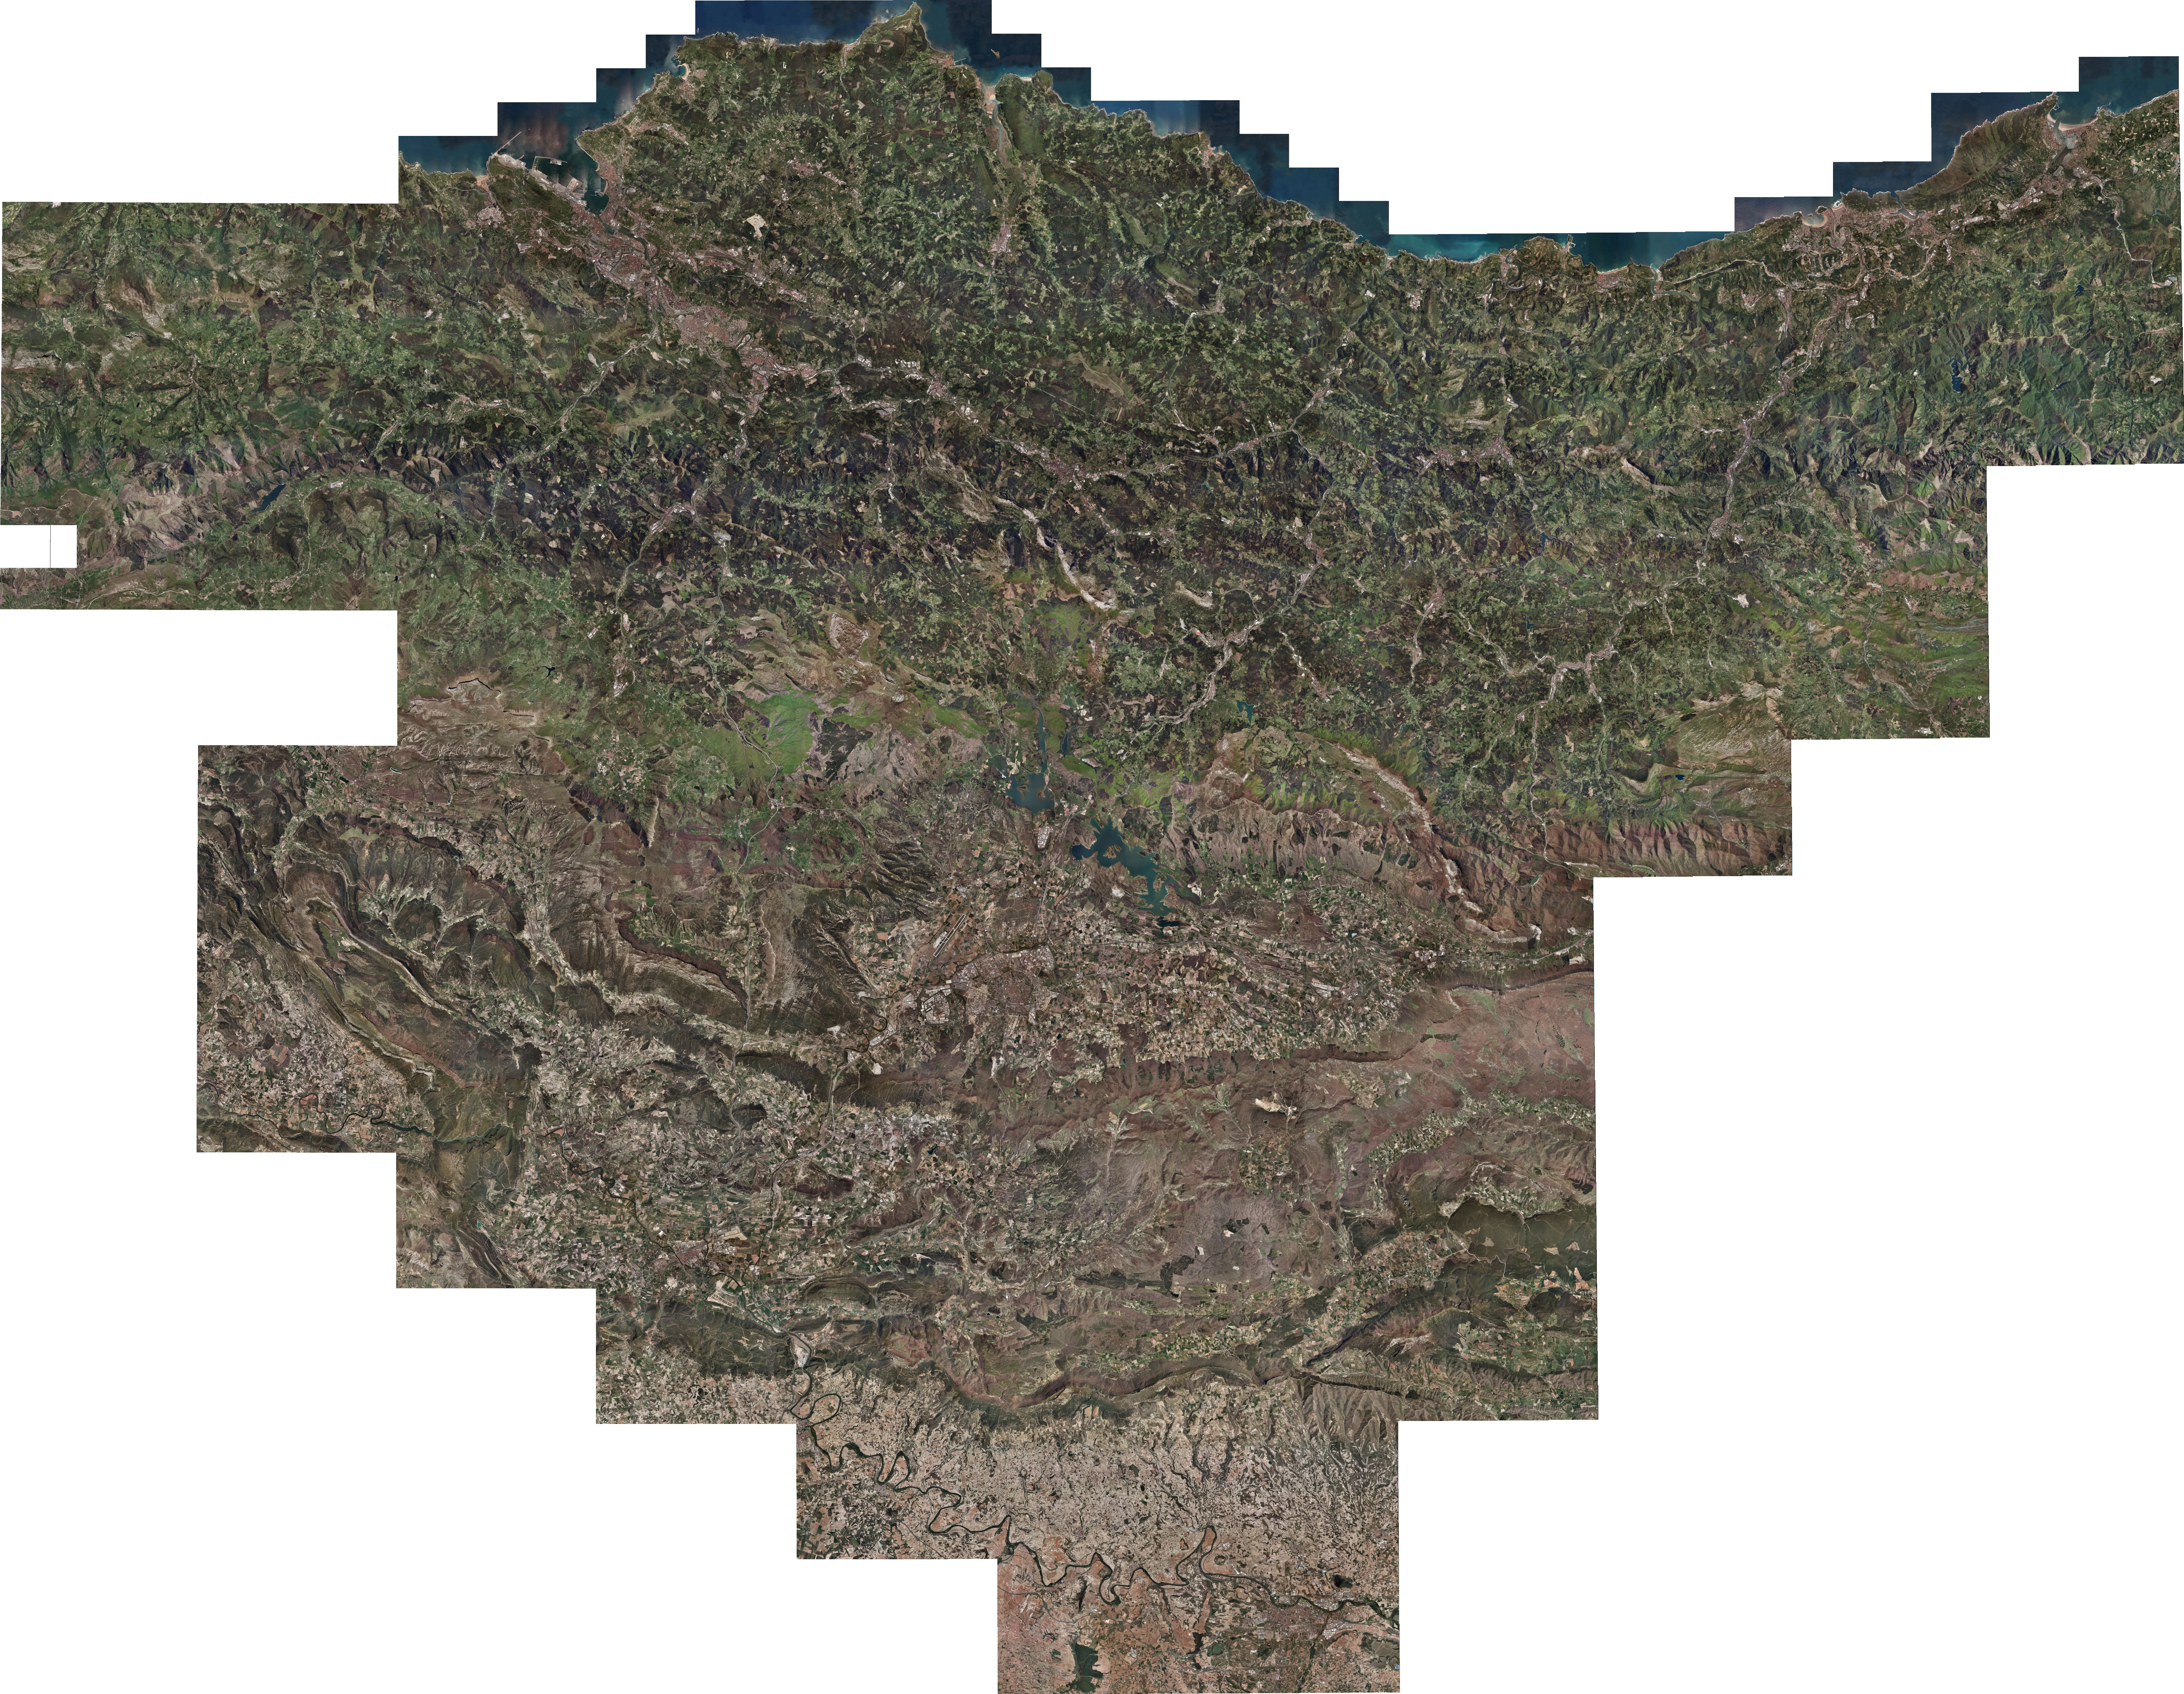 Orthophoto of the Basque Country 2009